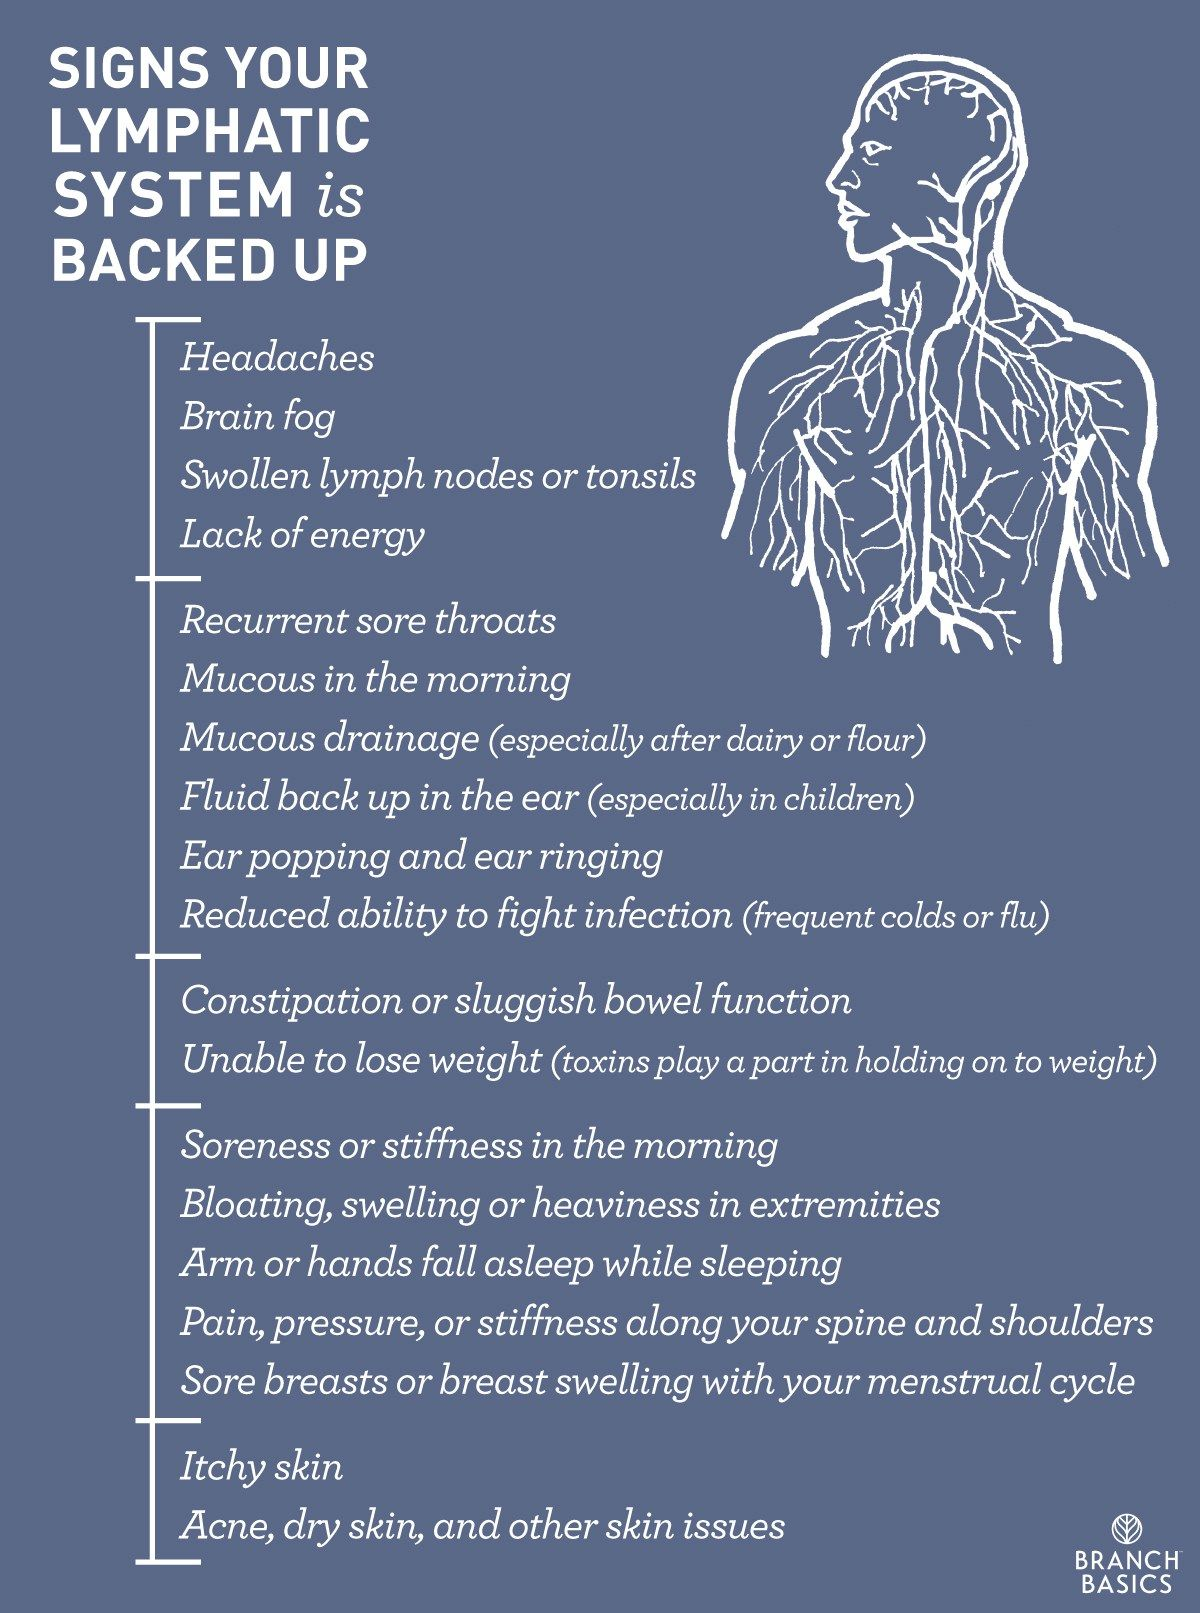 Lymph part of the circulatory system - Branch Basics Signs Your Lymphatic System Is Backed Up